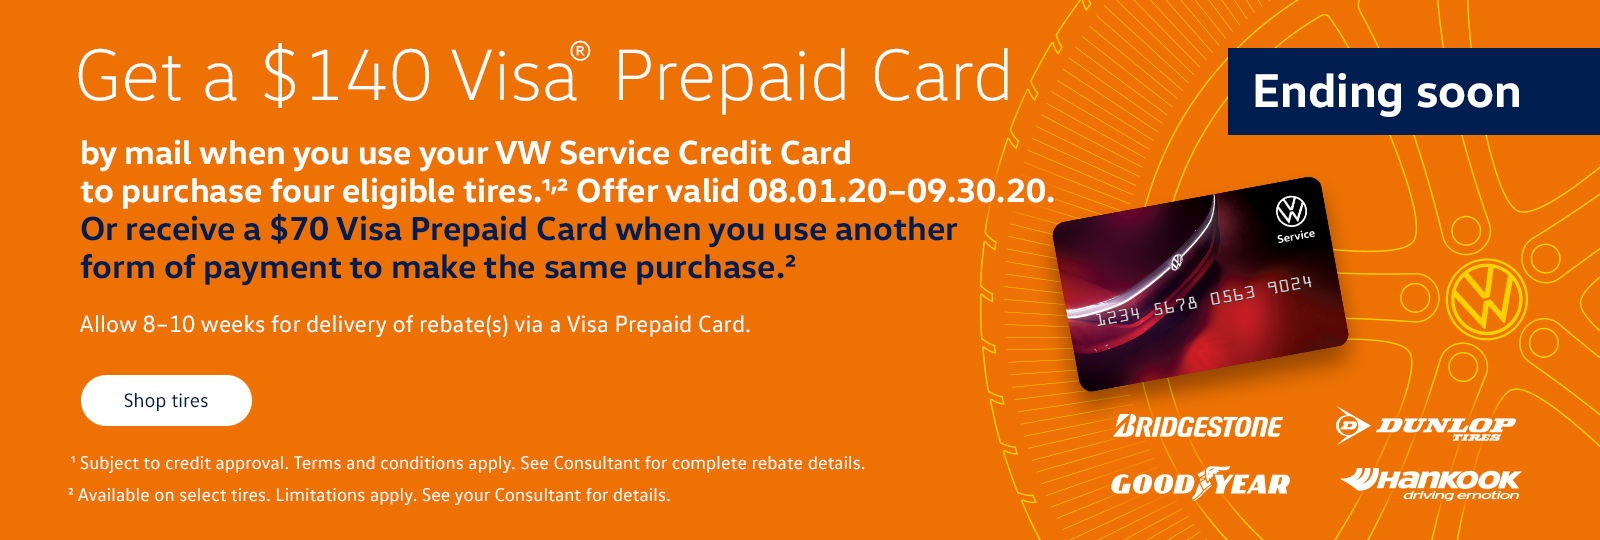 Get a $140 Visa Prepaid Card. By mail when you use your VW Service Credit card to purchase four eligible tires. Offer valid 08.1.20-9.30.20. Or receive a $70 visa prepaid card when you use another. Form of payment. To make the same purchase. Allow 8-10 weeks for delivery of rebates(s) via a visa prepaid card.Subject to credit approval. Terms and conditions apply. See consultant for complete rebate details. Available on select tires. Limitation apply. See your consultant for details. Click or tap to shop tires.